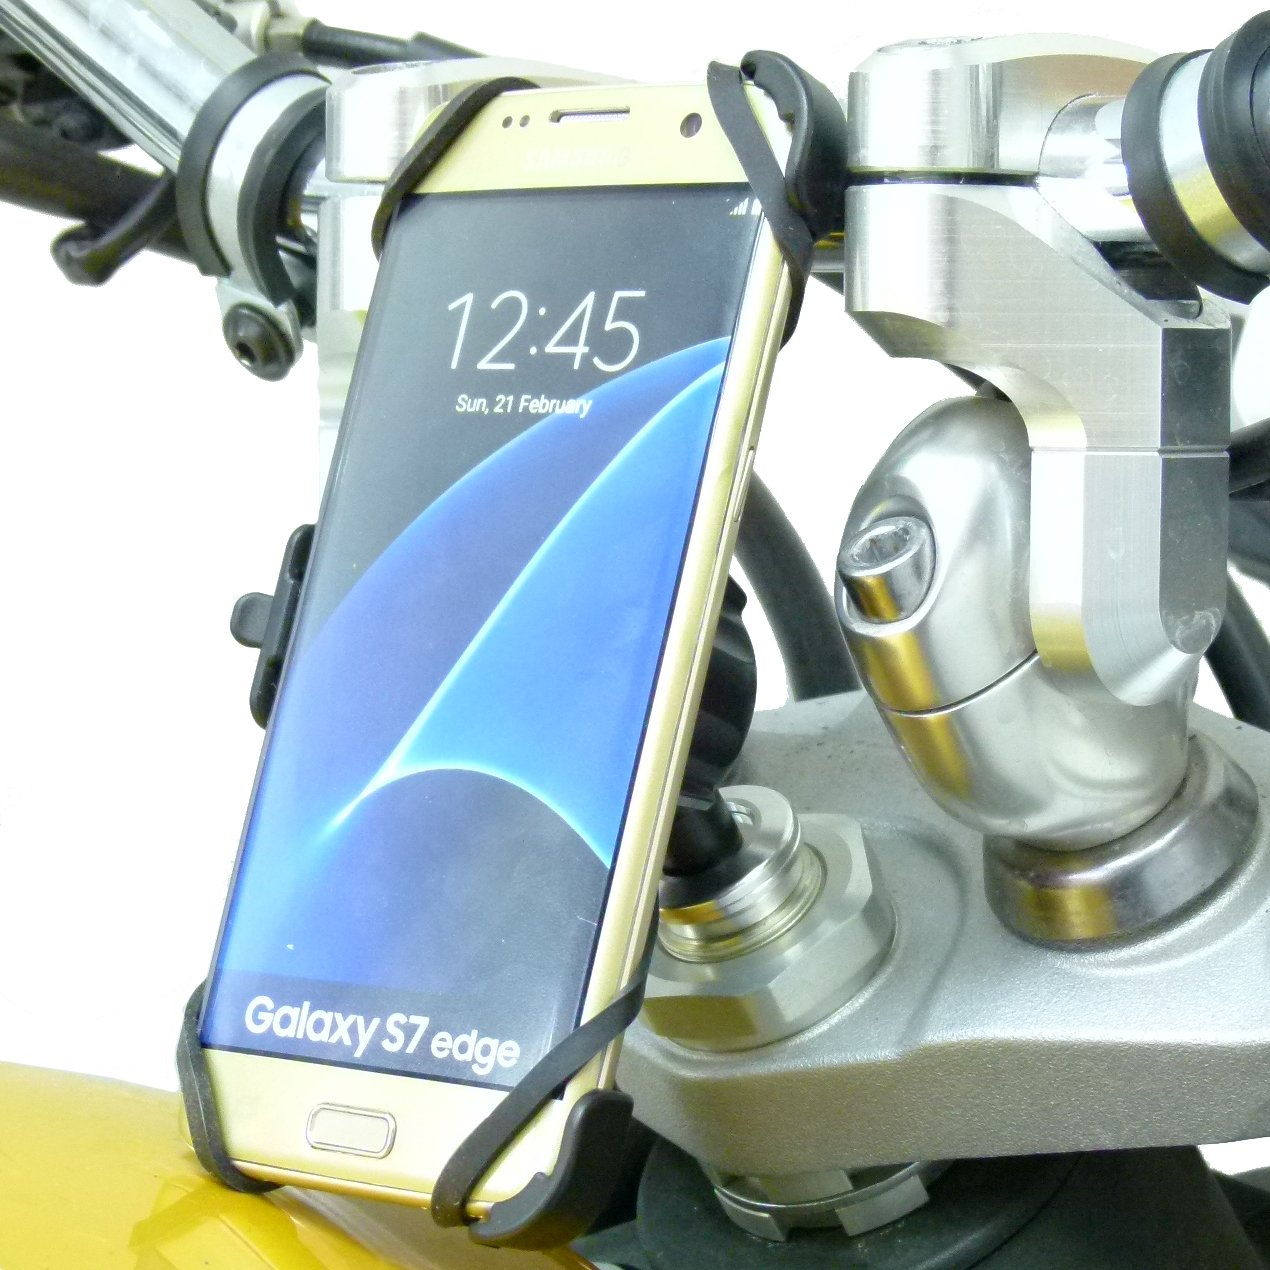 BuyBits Dedicated 13.3-14.7mm Fork Stem Sports Bike Mount for Samsung Galaxy S7 Edge by Buybits (Image #1)